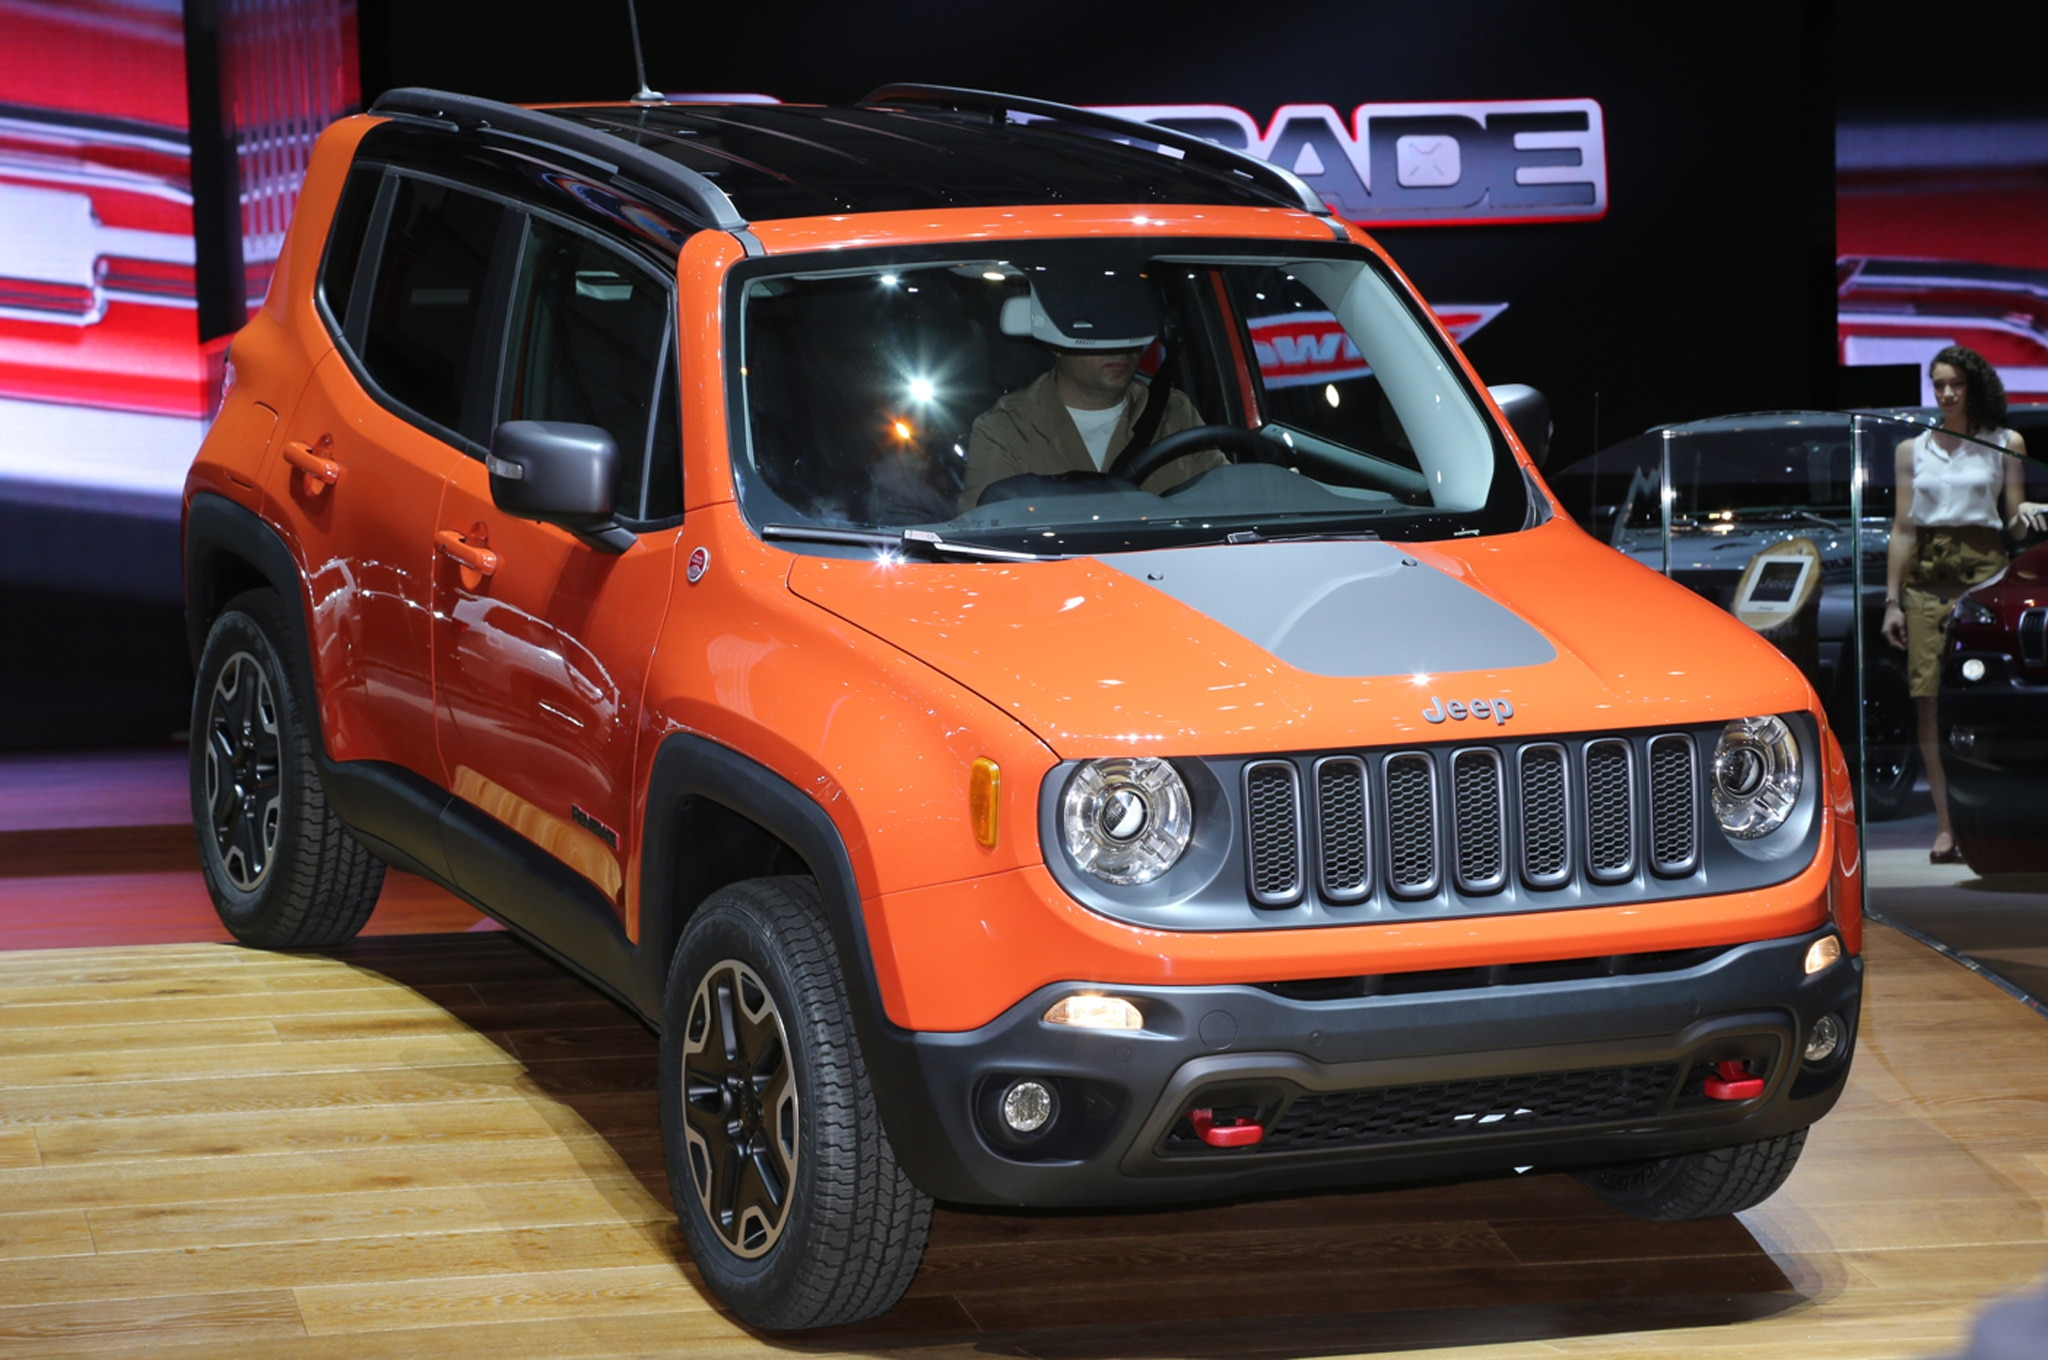 2015 Jeep Renegade Trailhawk show floor on stage